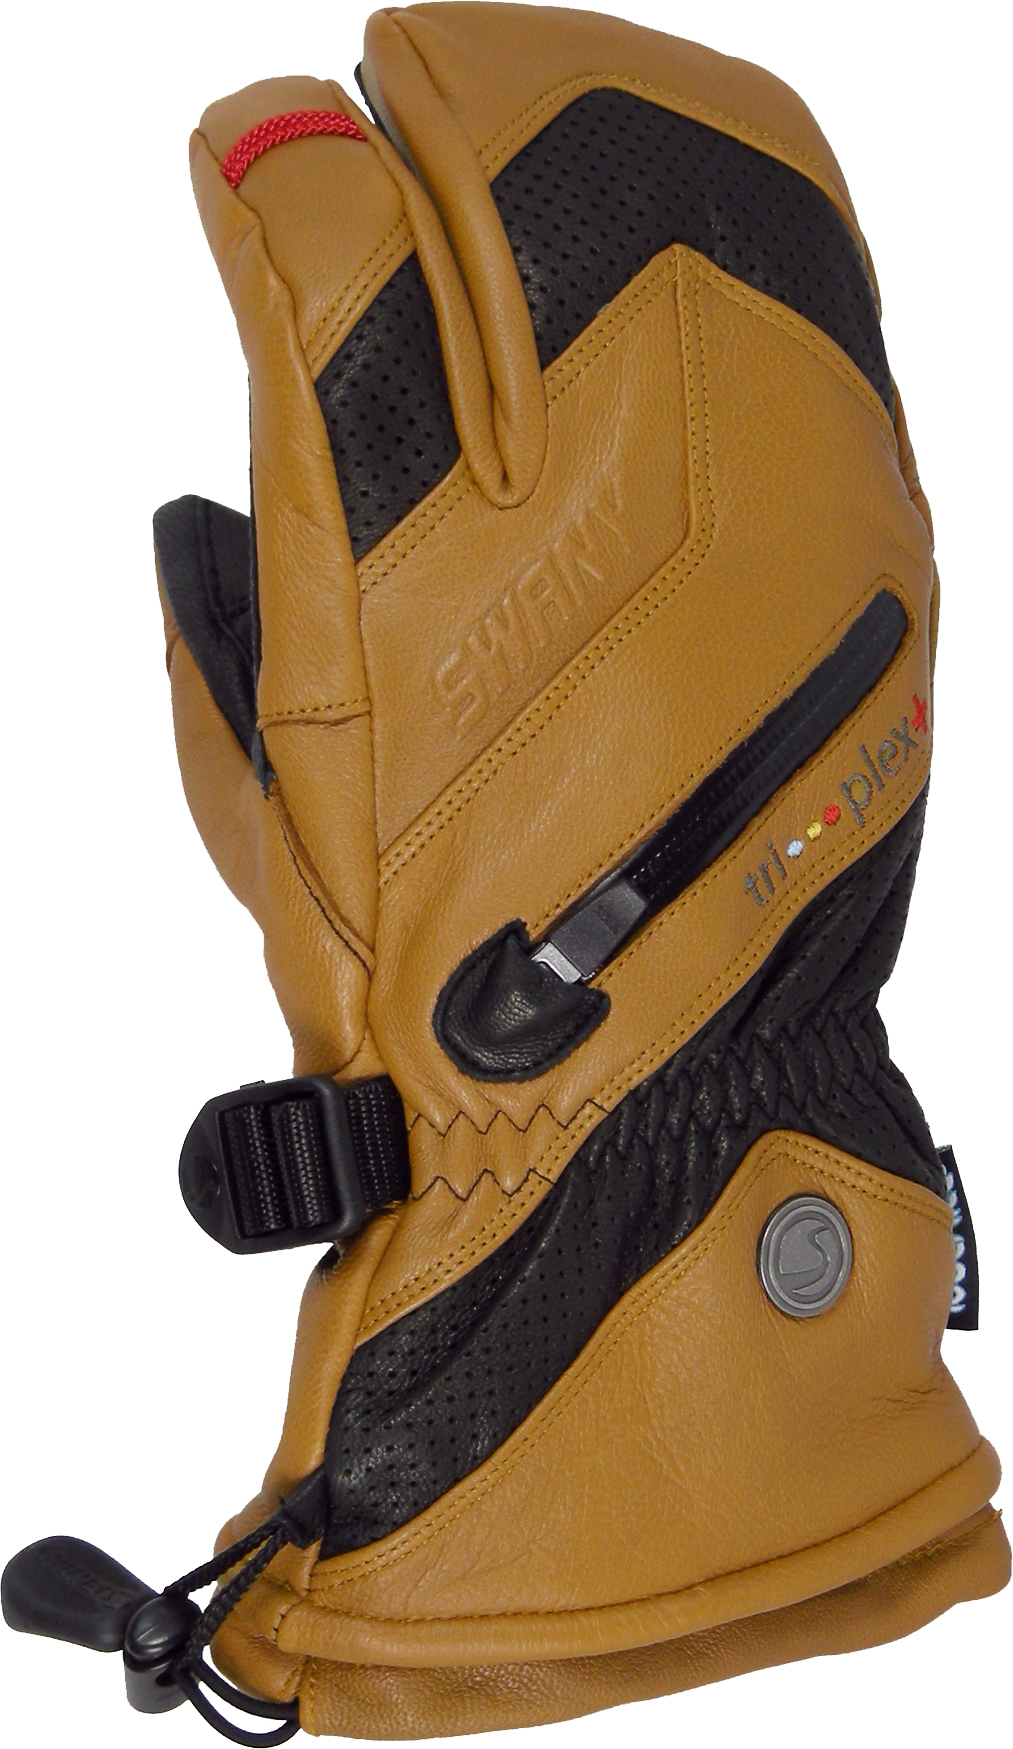 X-CALIBUR TTL 3 FINGER MITT picture